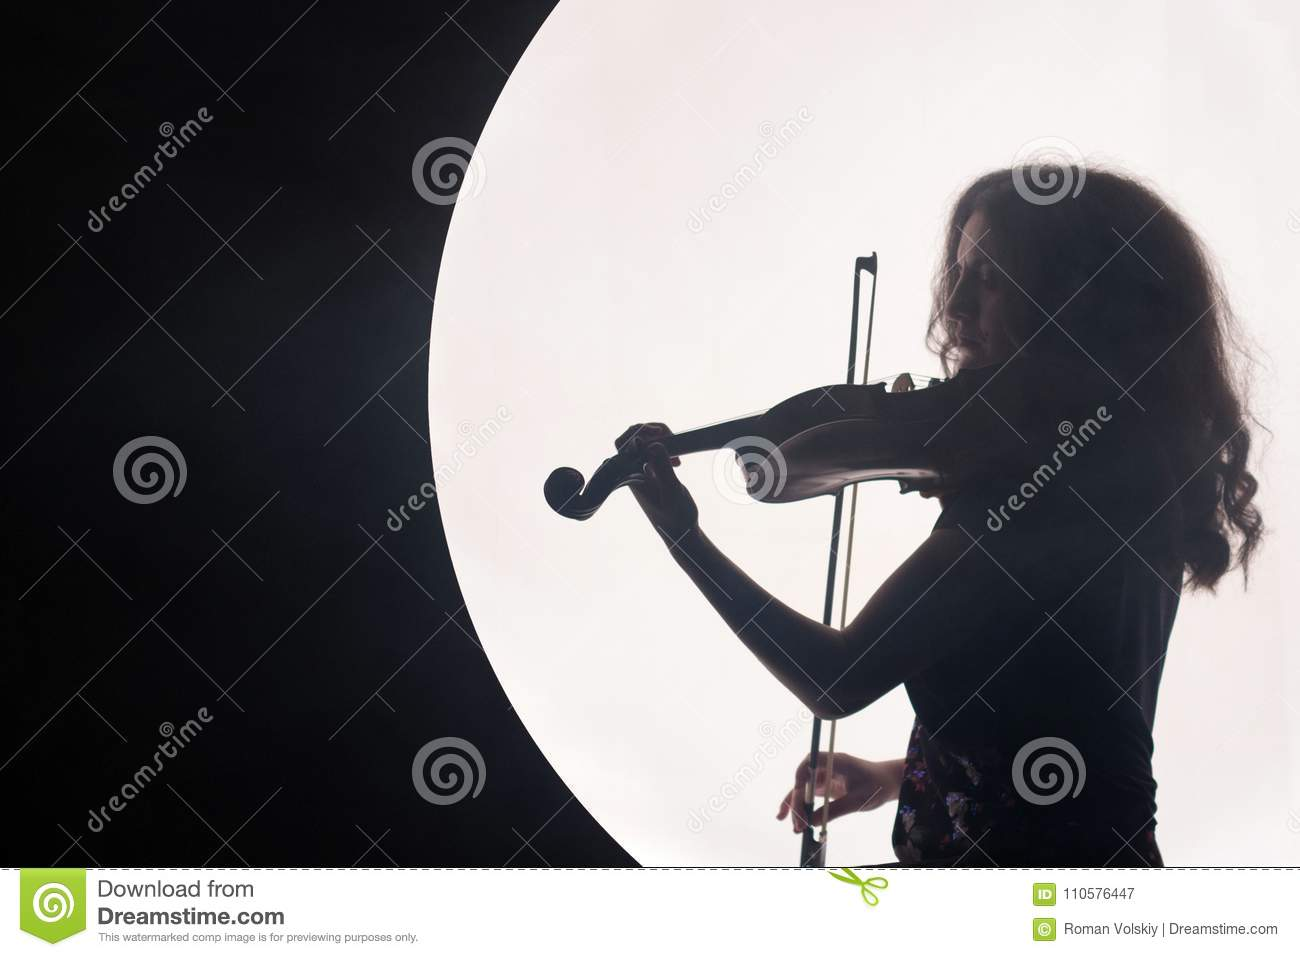 Download Silhouette Of A Woman Violinist In A White Semicircle With Smoke On A Black Background. A Concept For Music During The Stock Image - Image of portrait, beautiful: 110576447